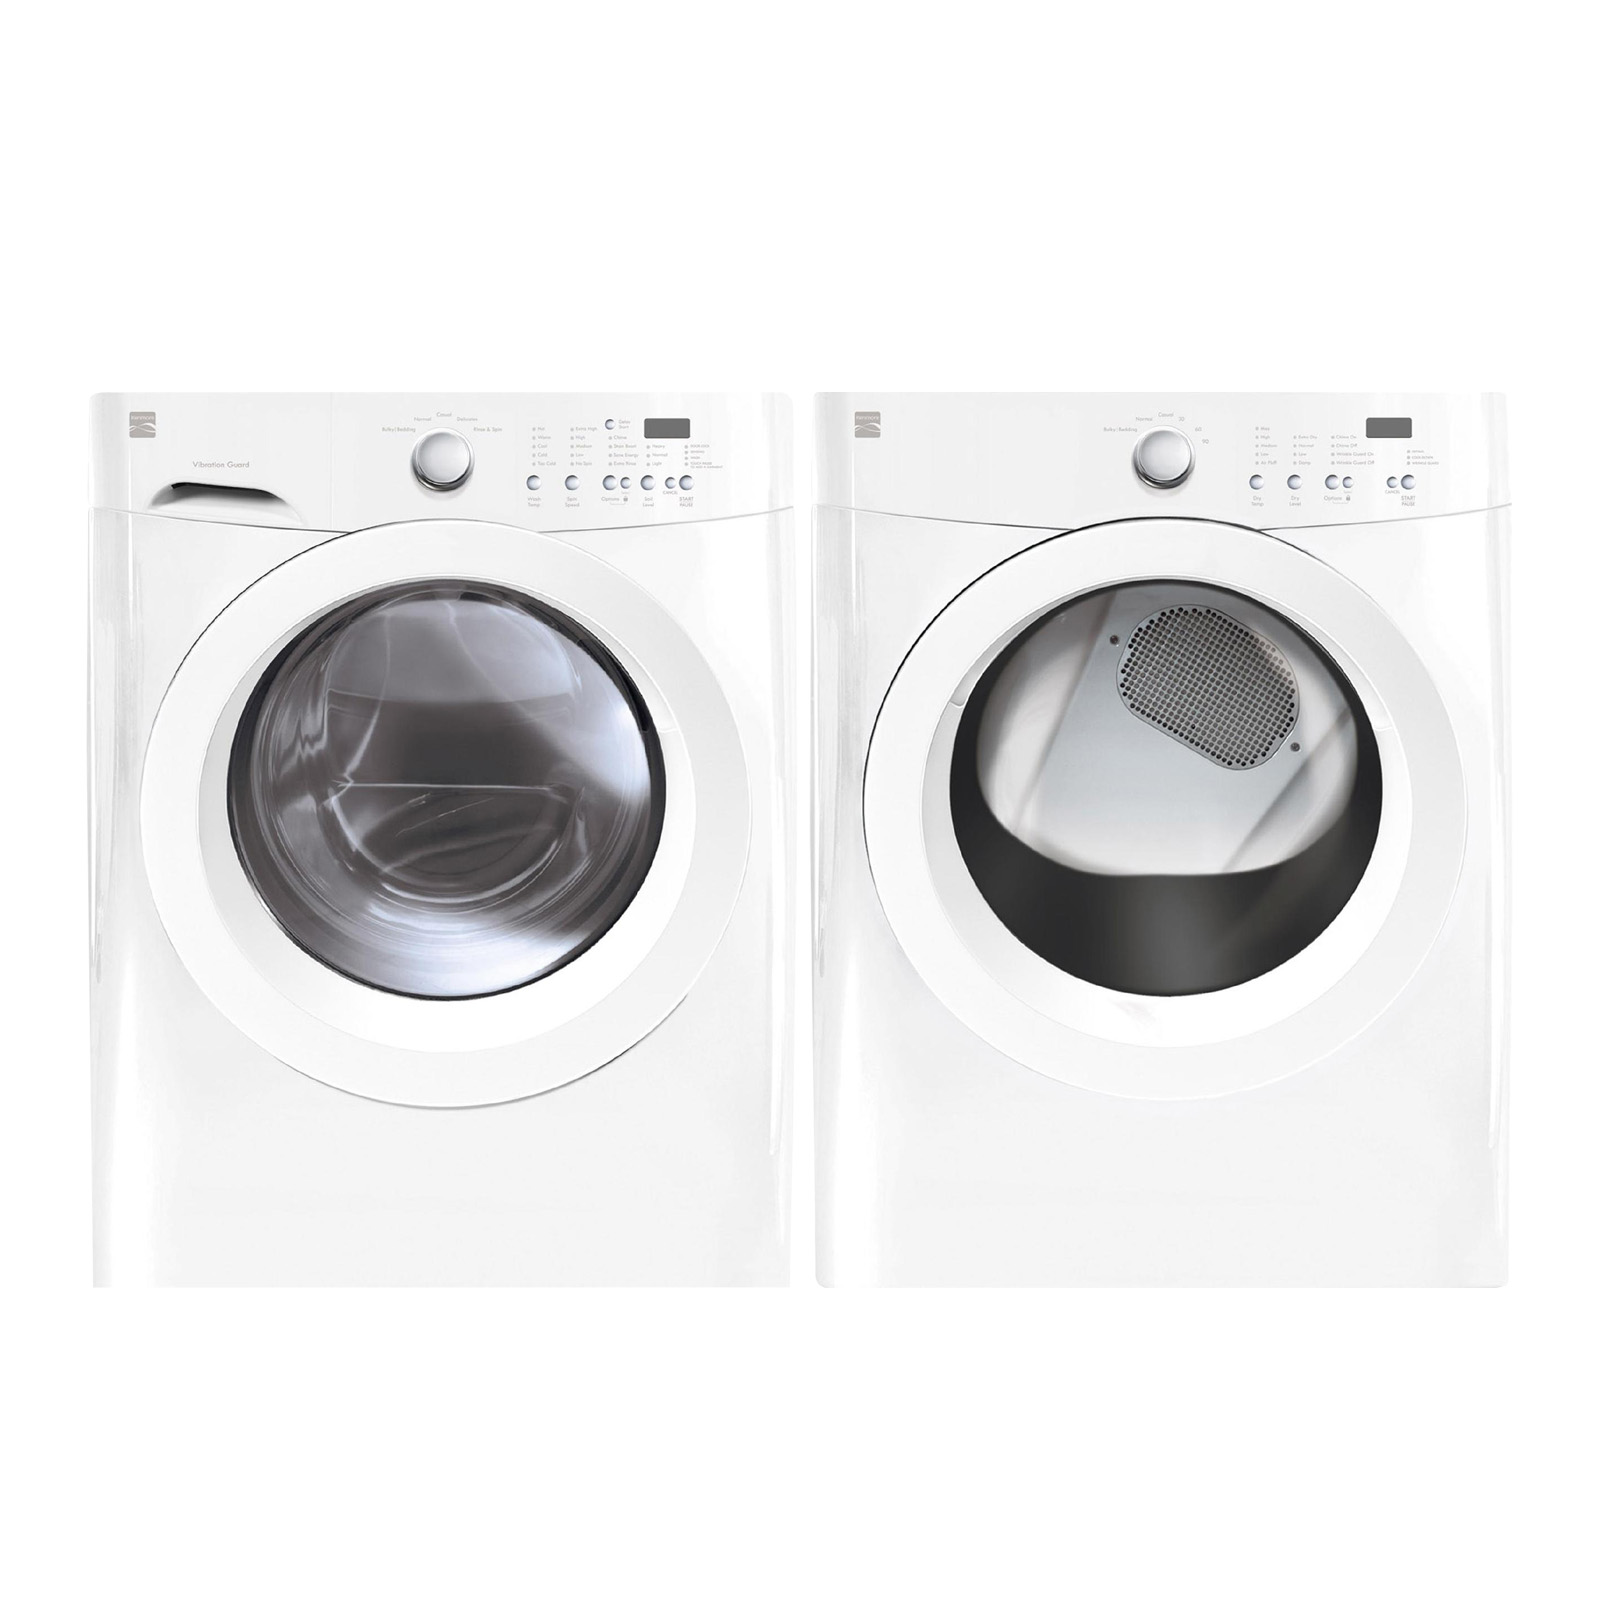 Kenmore 3.7 cu. ft. Front-Load Washer & Kenmore 7.0 cu. ft. Dryer - White Bundle